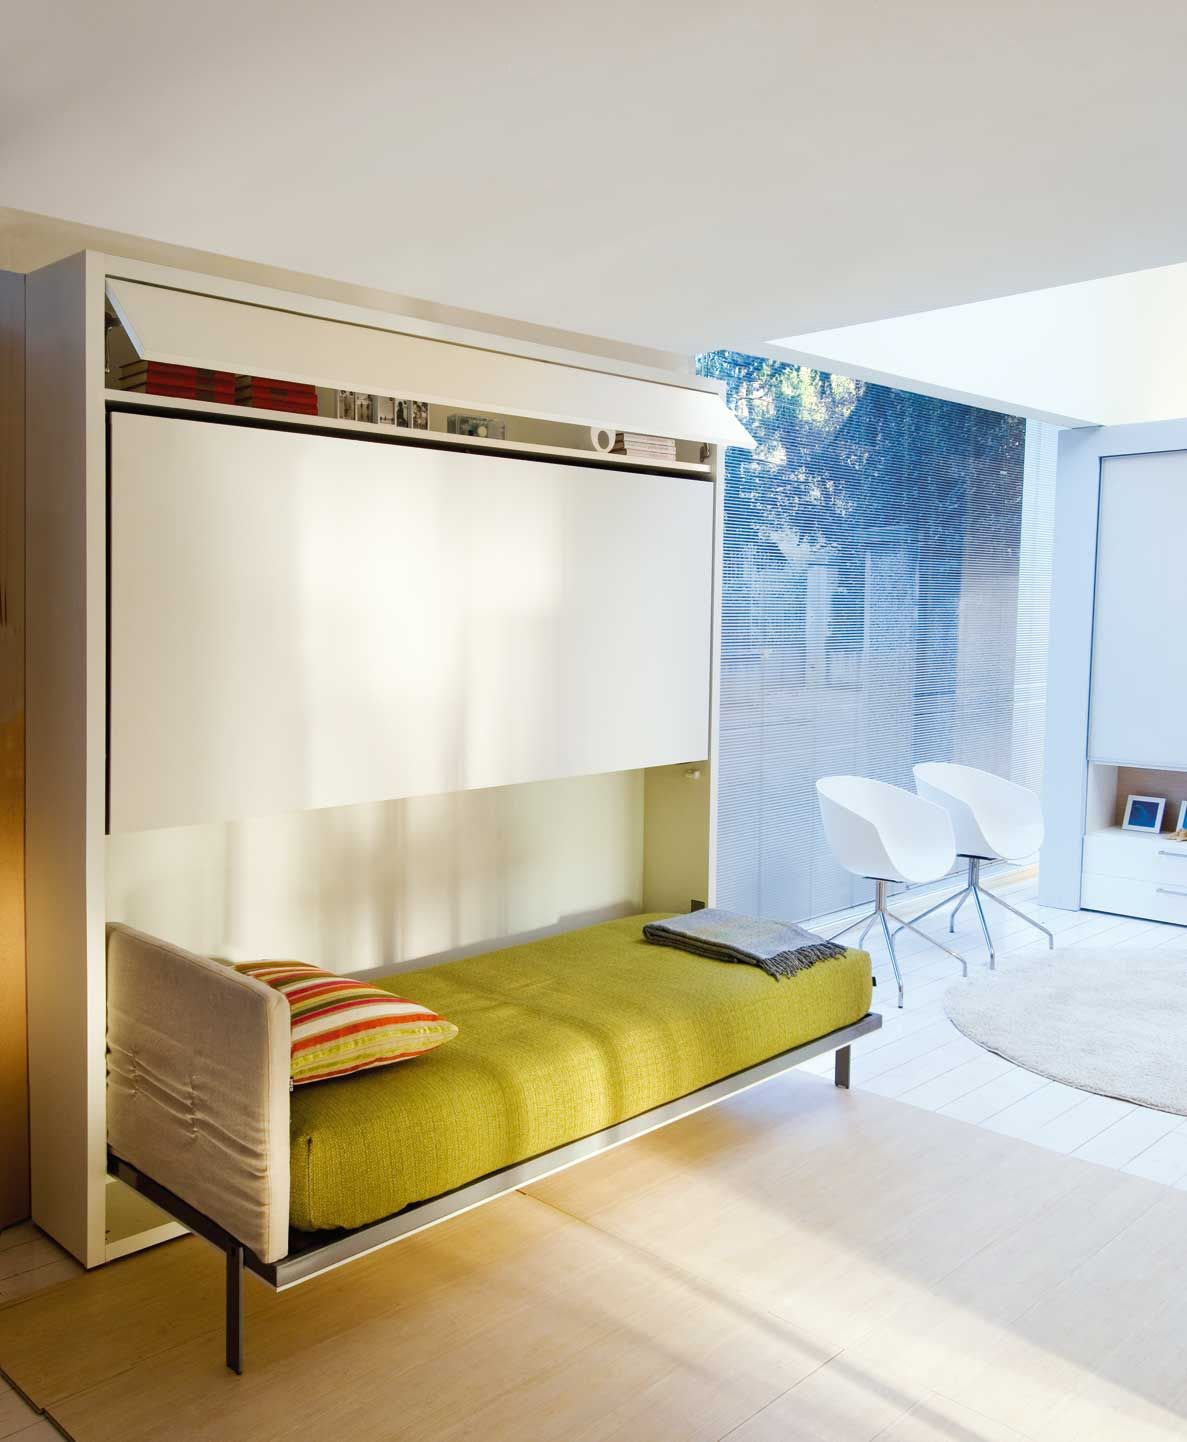 Captivating Bedroom Creative Design For Small Space Bedroom Decoration With Exciting · Bunk  Beds ...